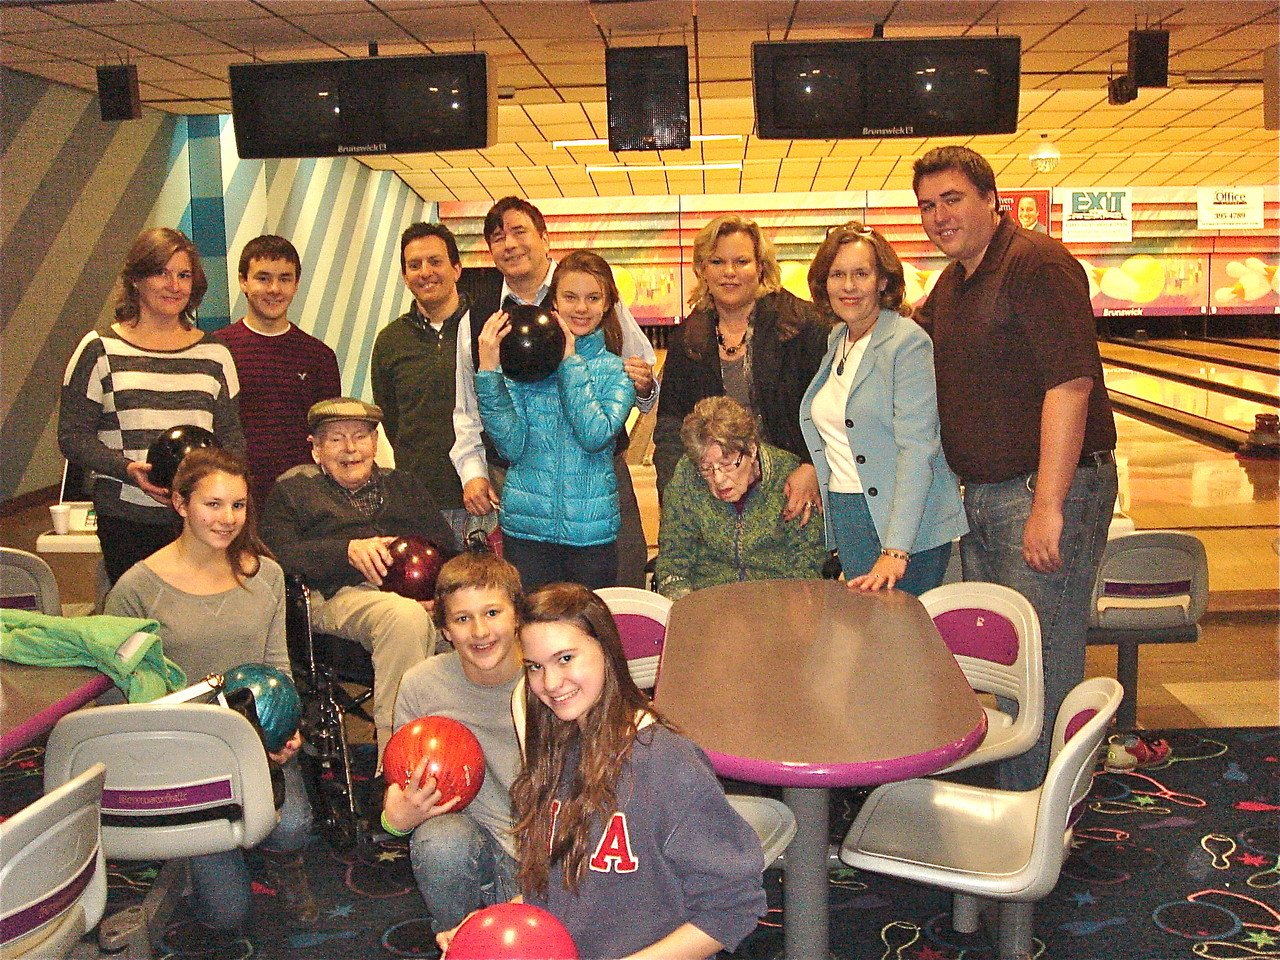 The group of bowlers!! November 23, 2012. Bowl-mor Lanes, E. Syracuse.